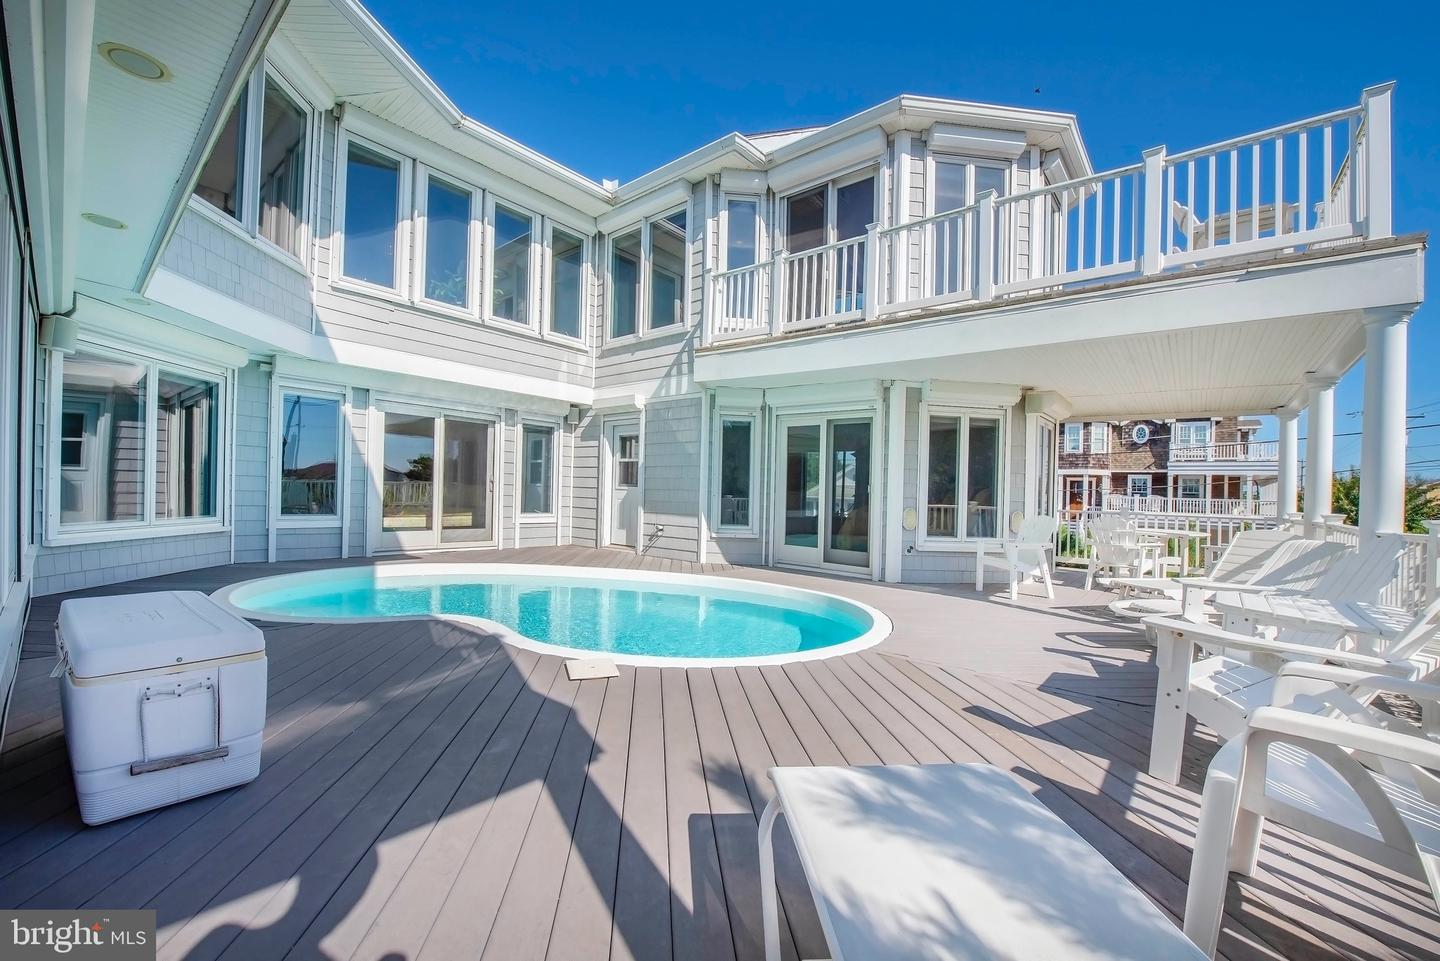 DESU147280-302007871025-2019-08-31-13-42-10 810 Bunting Ave | Fenwick Island, DE Real Estate For Sale | MLS# Desu147280  - Jack Lingo REALTOR